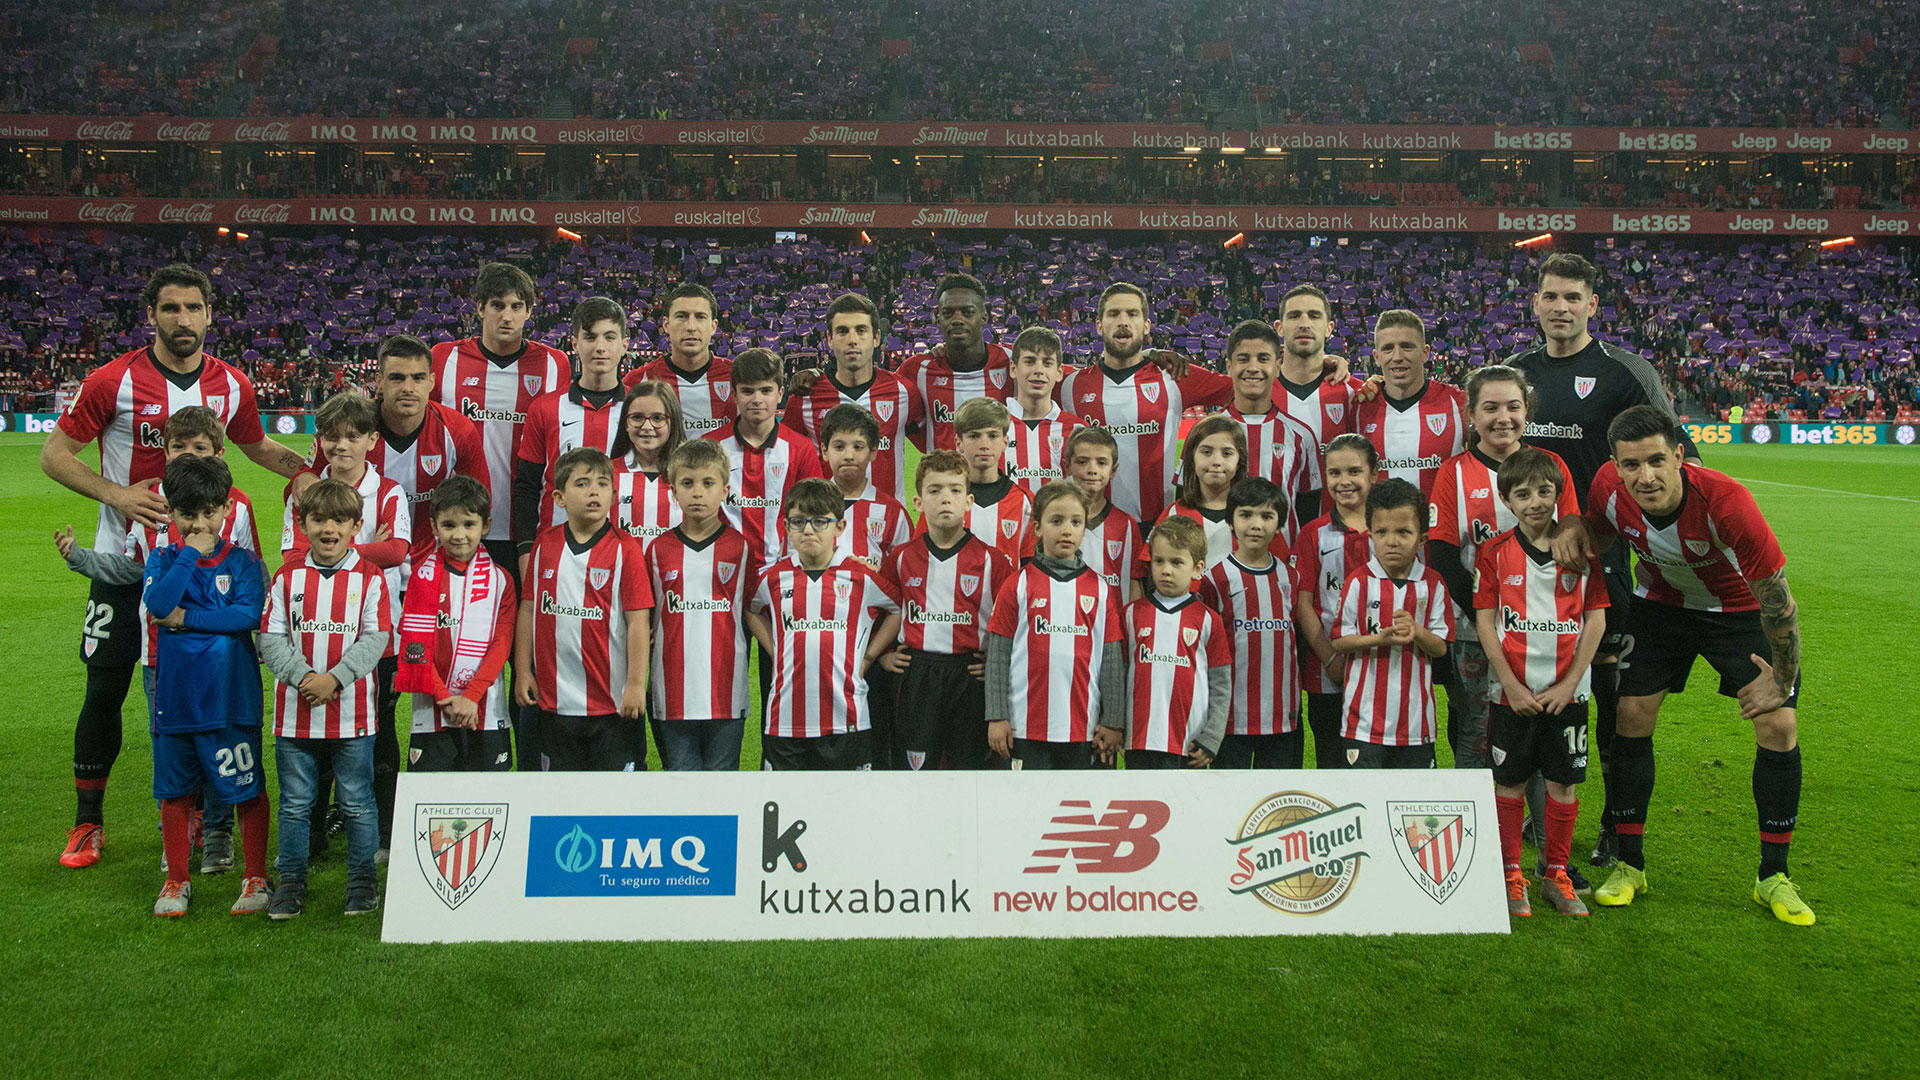 Draw for the photograph with players: Atlético de Madrid